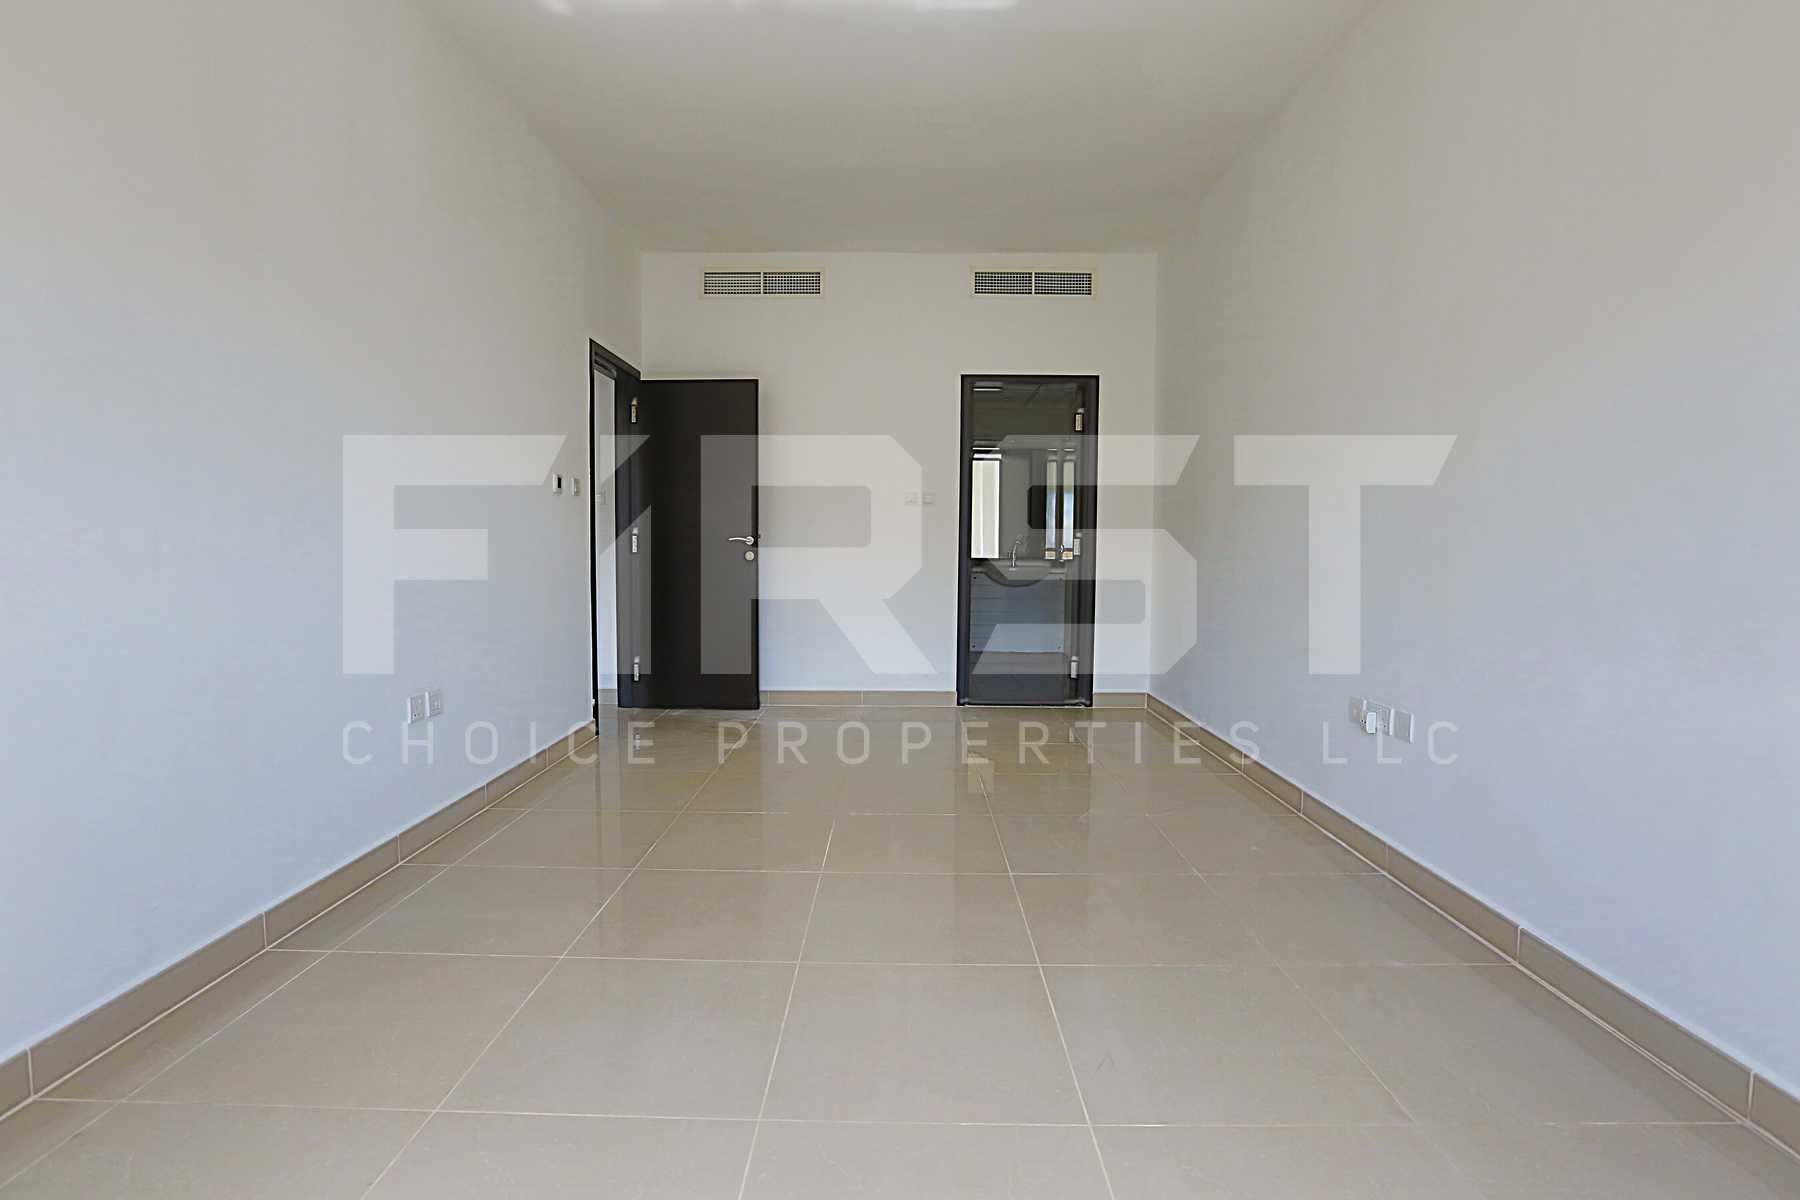 9. Internal Photo of 2 Bedroom Apartment Type B in Al Reef Downtown Al Reef Abu Dhabi UAE 114 sq.m 1227 (15).jpg